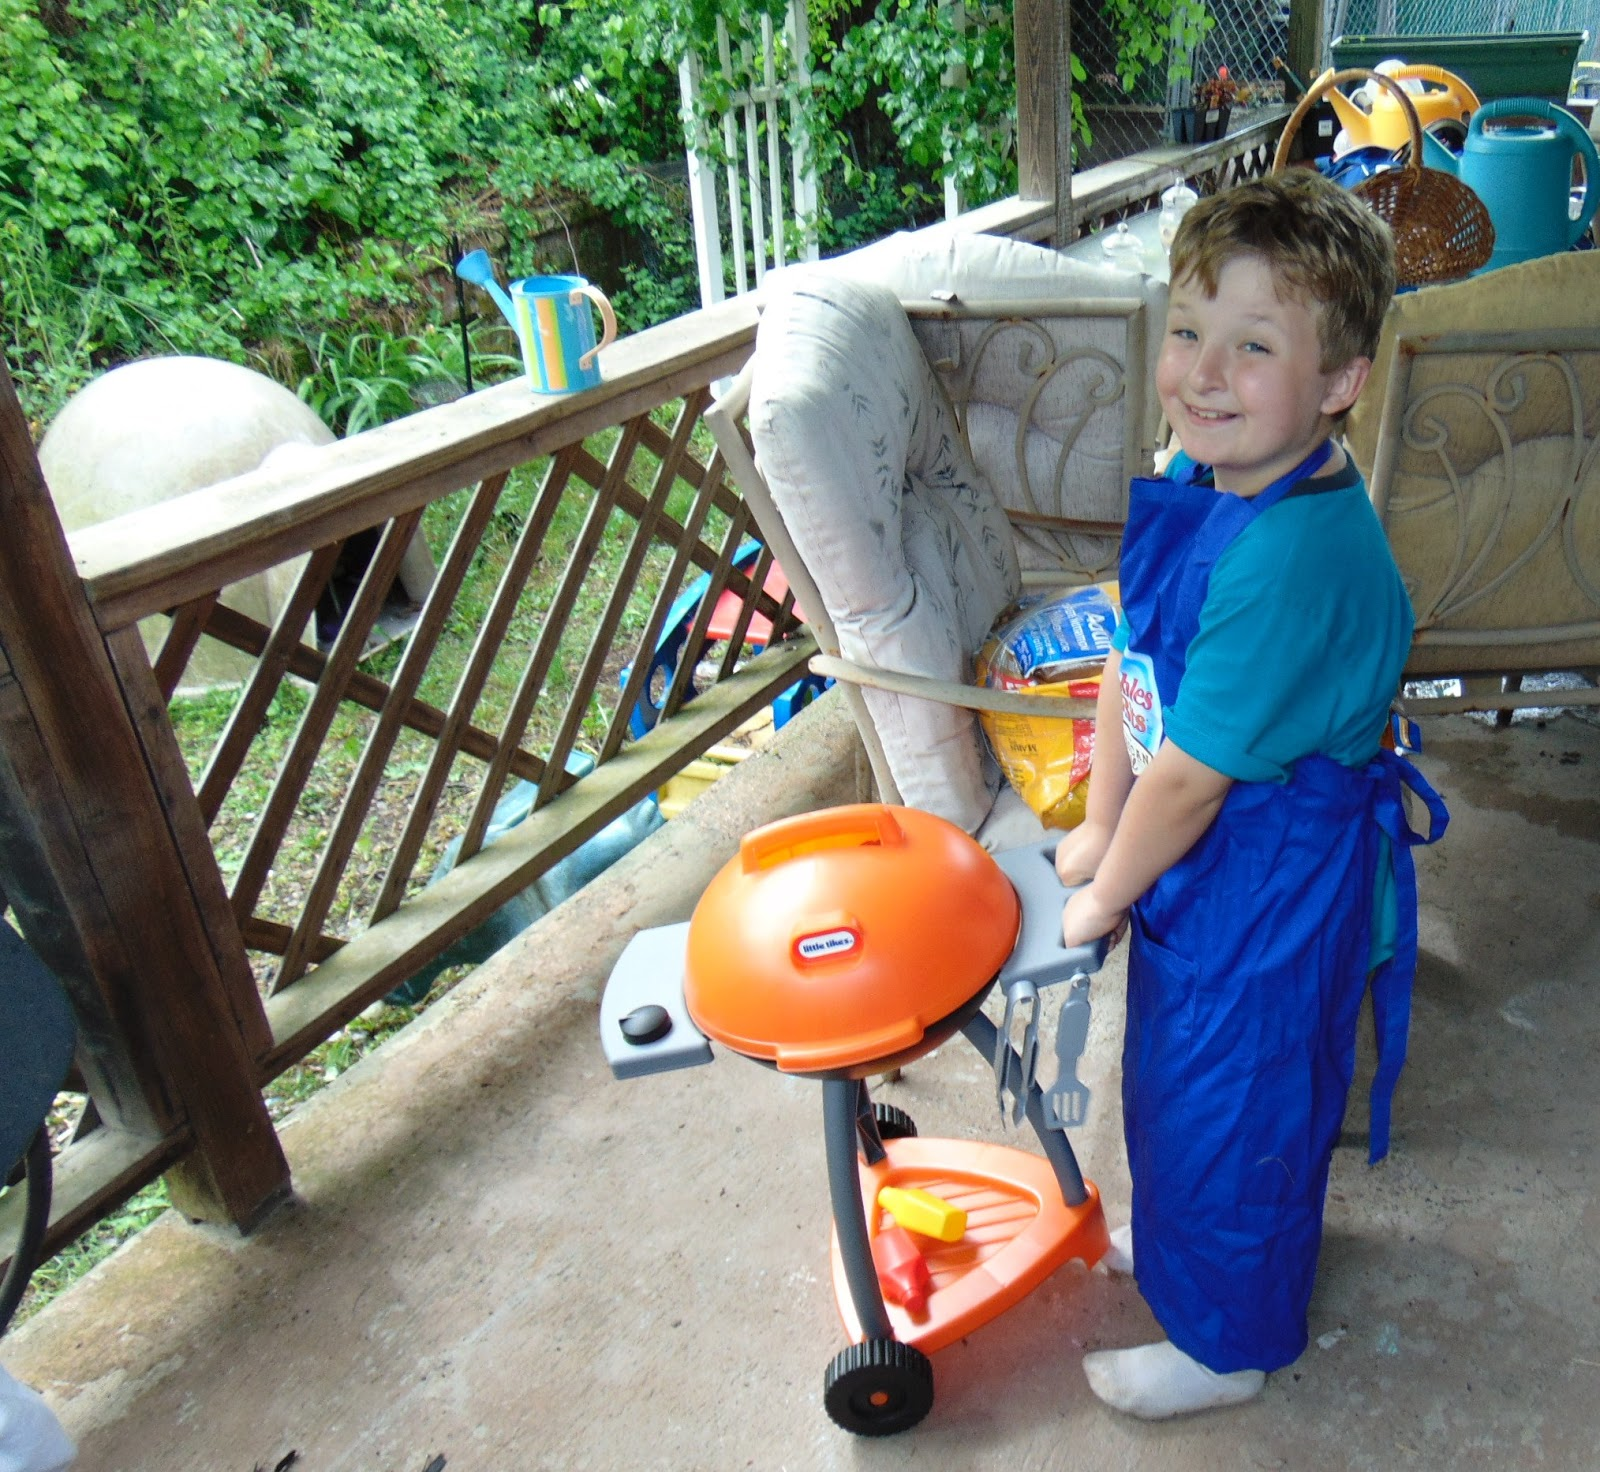 The Little Tikes Sizzle N Serve Grill Has Wheels So My Boys Could Easily Move It Themselves